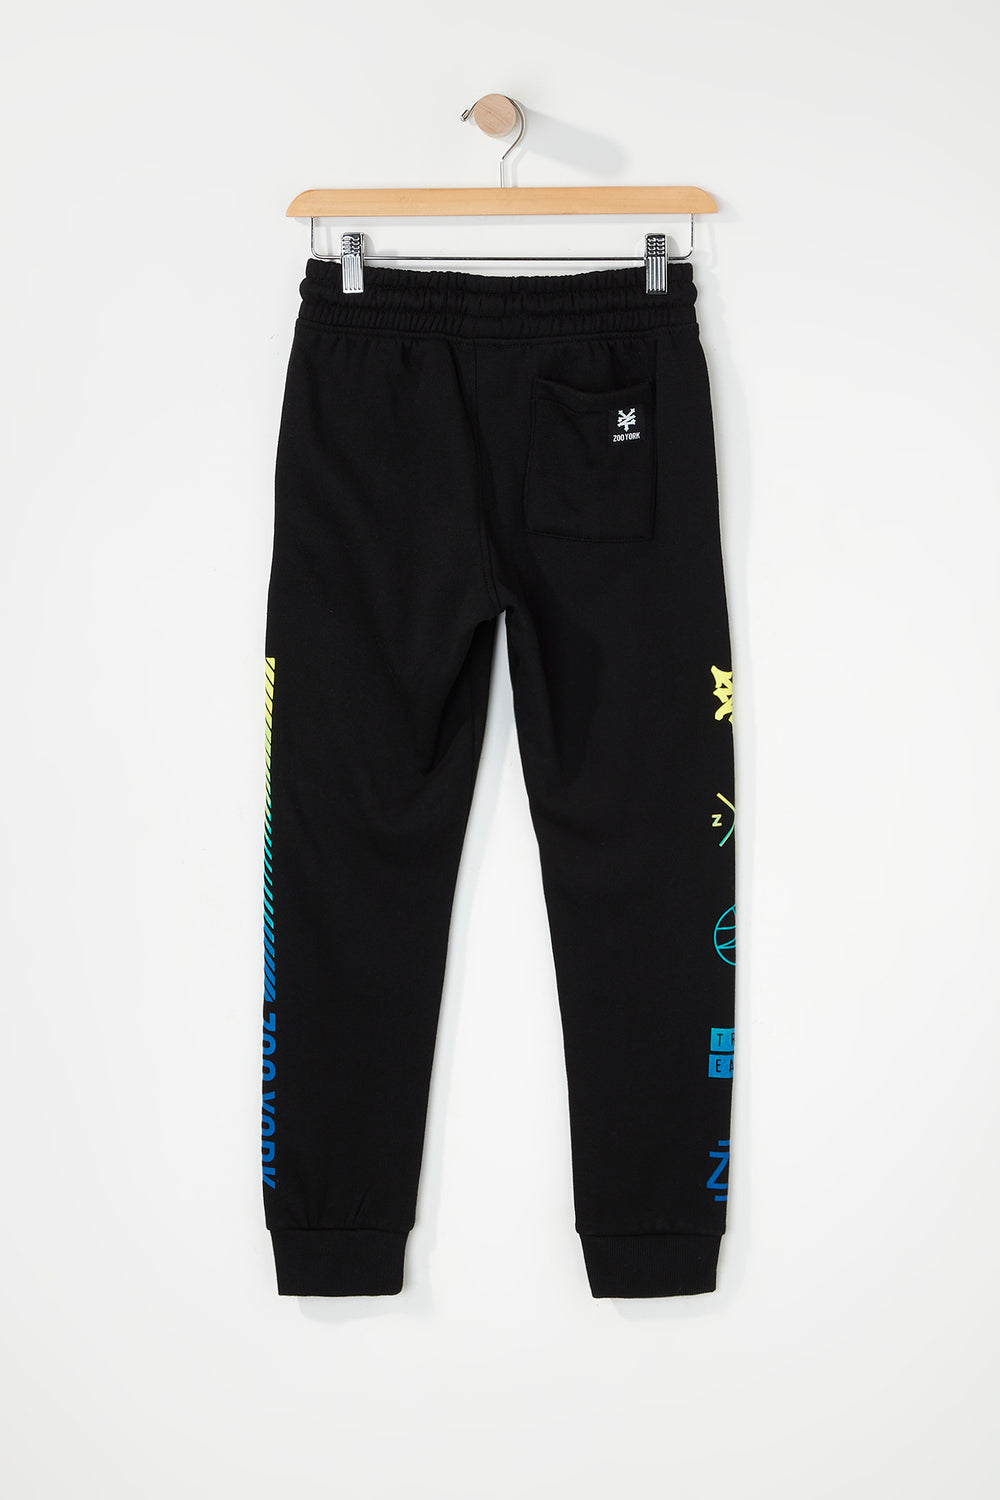 Zoo York Boys Gradient Logo Jogger Black